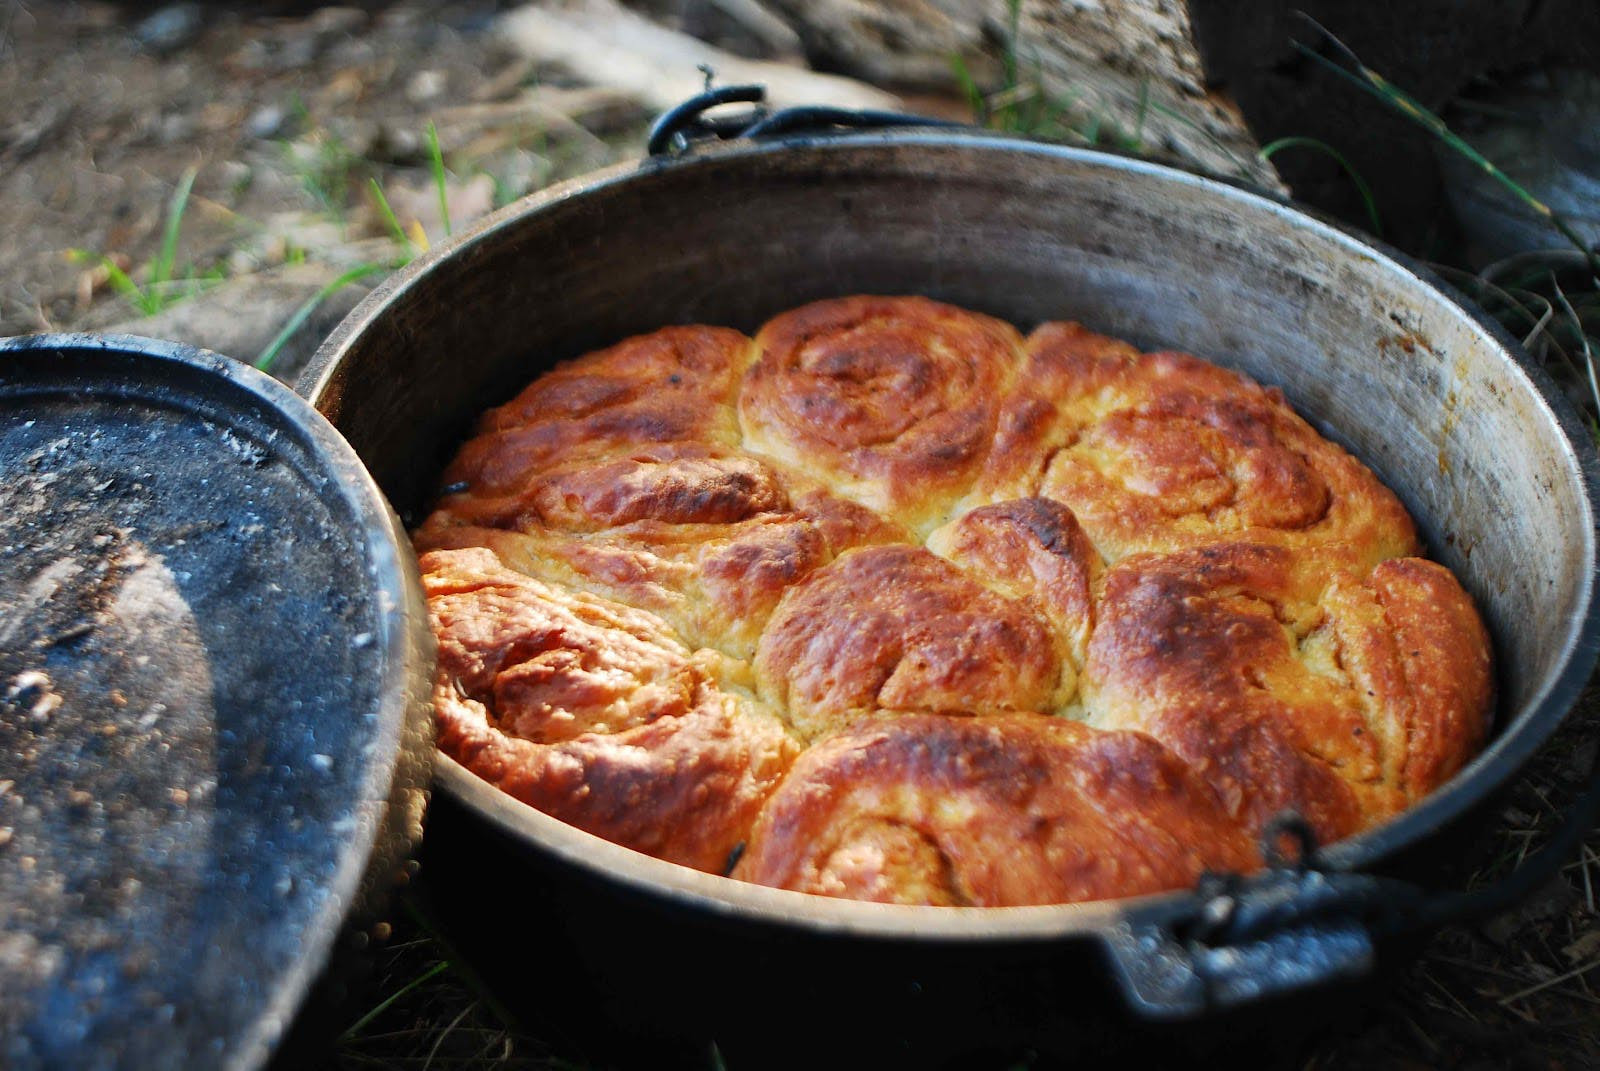 Dutch Oven Desserts Camping  From Campfire Cooking to Cassoulet 22 Delish Dutch Oven